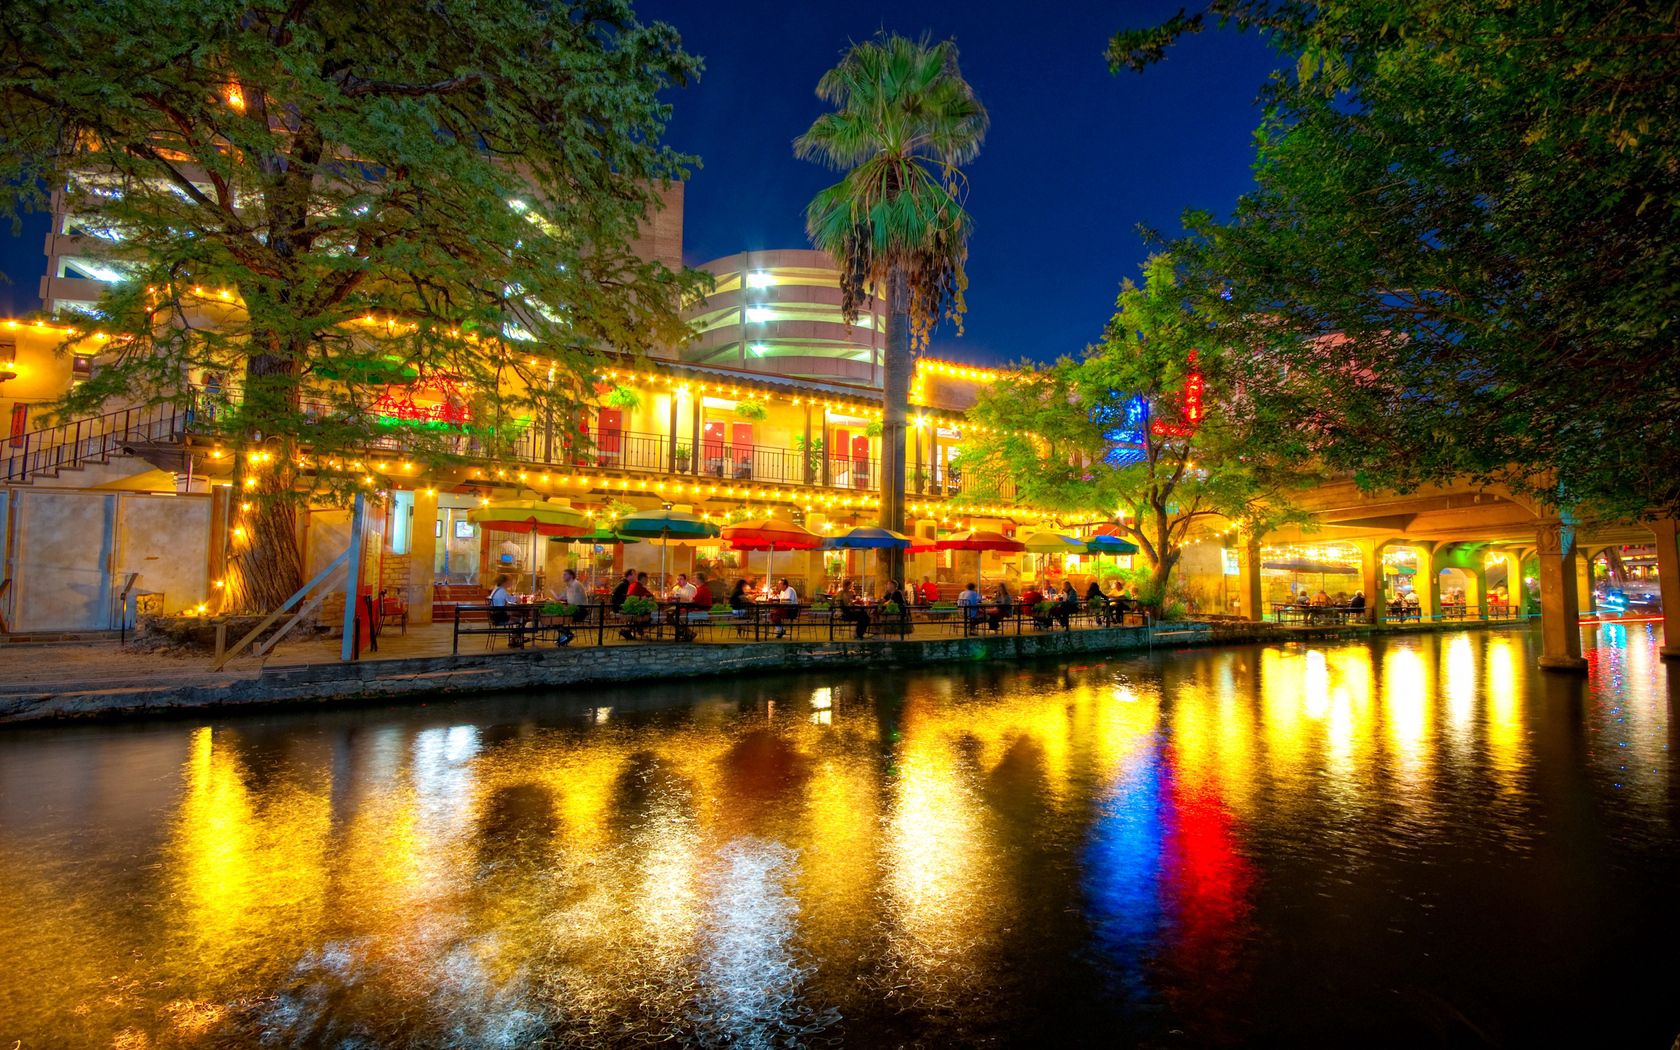 104274 download wallpaper San Antonio, Texas, Cafe, Café, People, Reflection, Evening, Cities screensavers and pictures for free